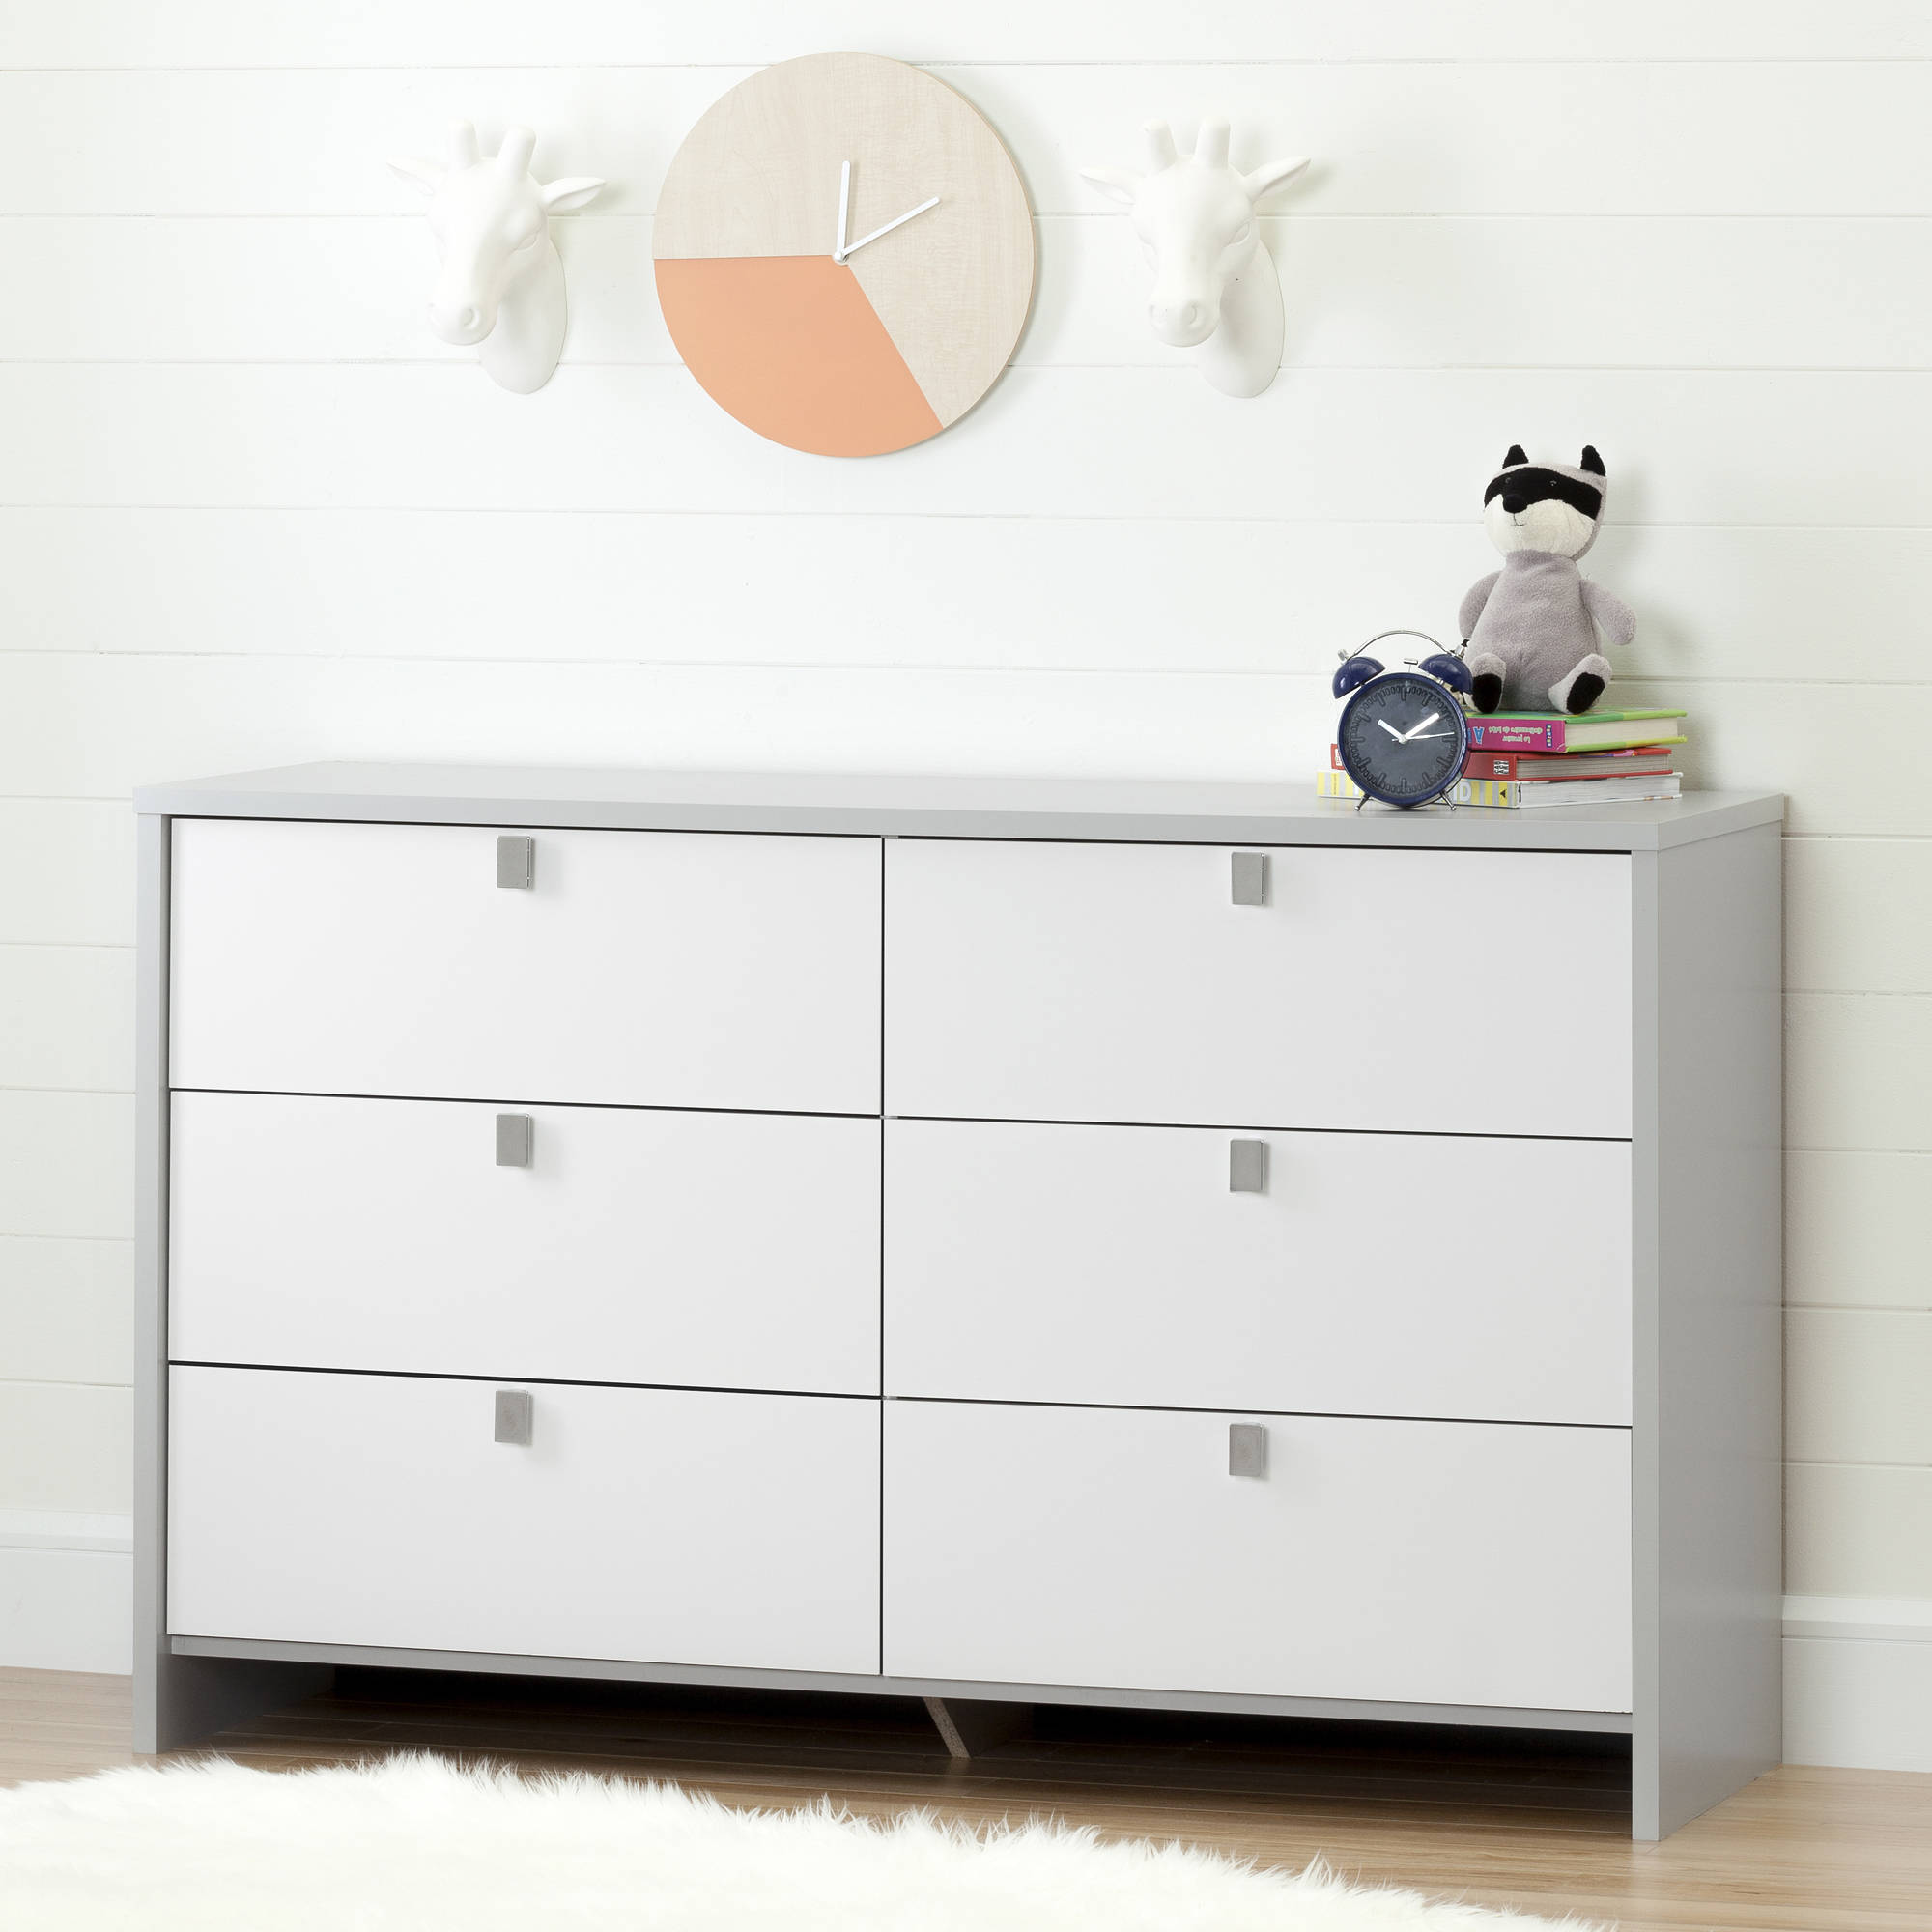 South Shore Cookie 6 Drawer Double Dresser   177 91  Walmart. Ikea Malm dresser alternatives  7 fab styles to shop now   Curbed